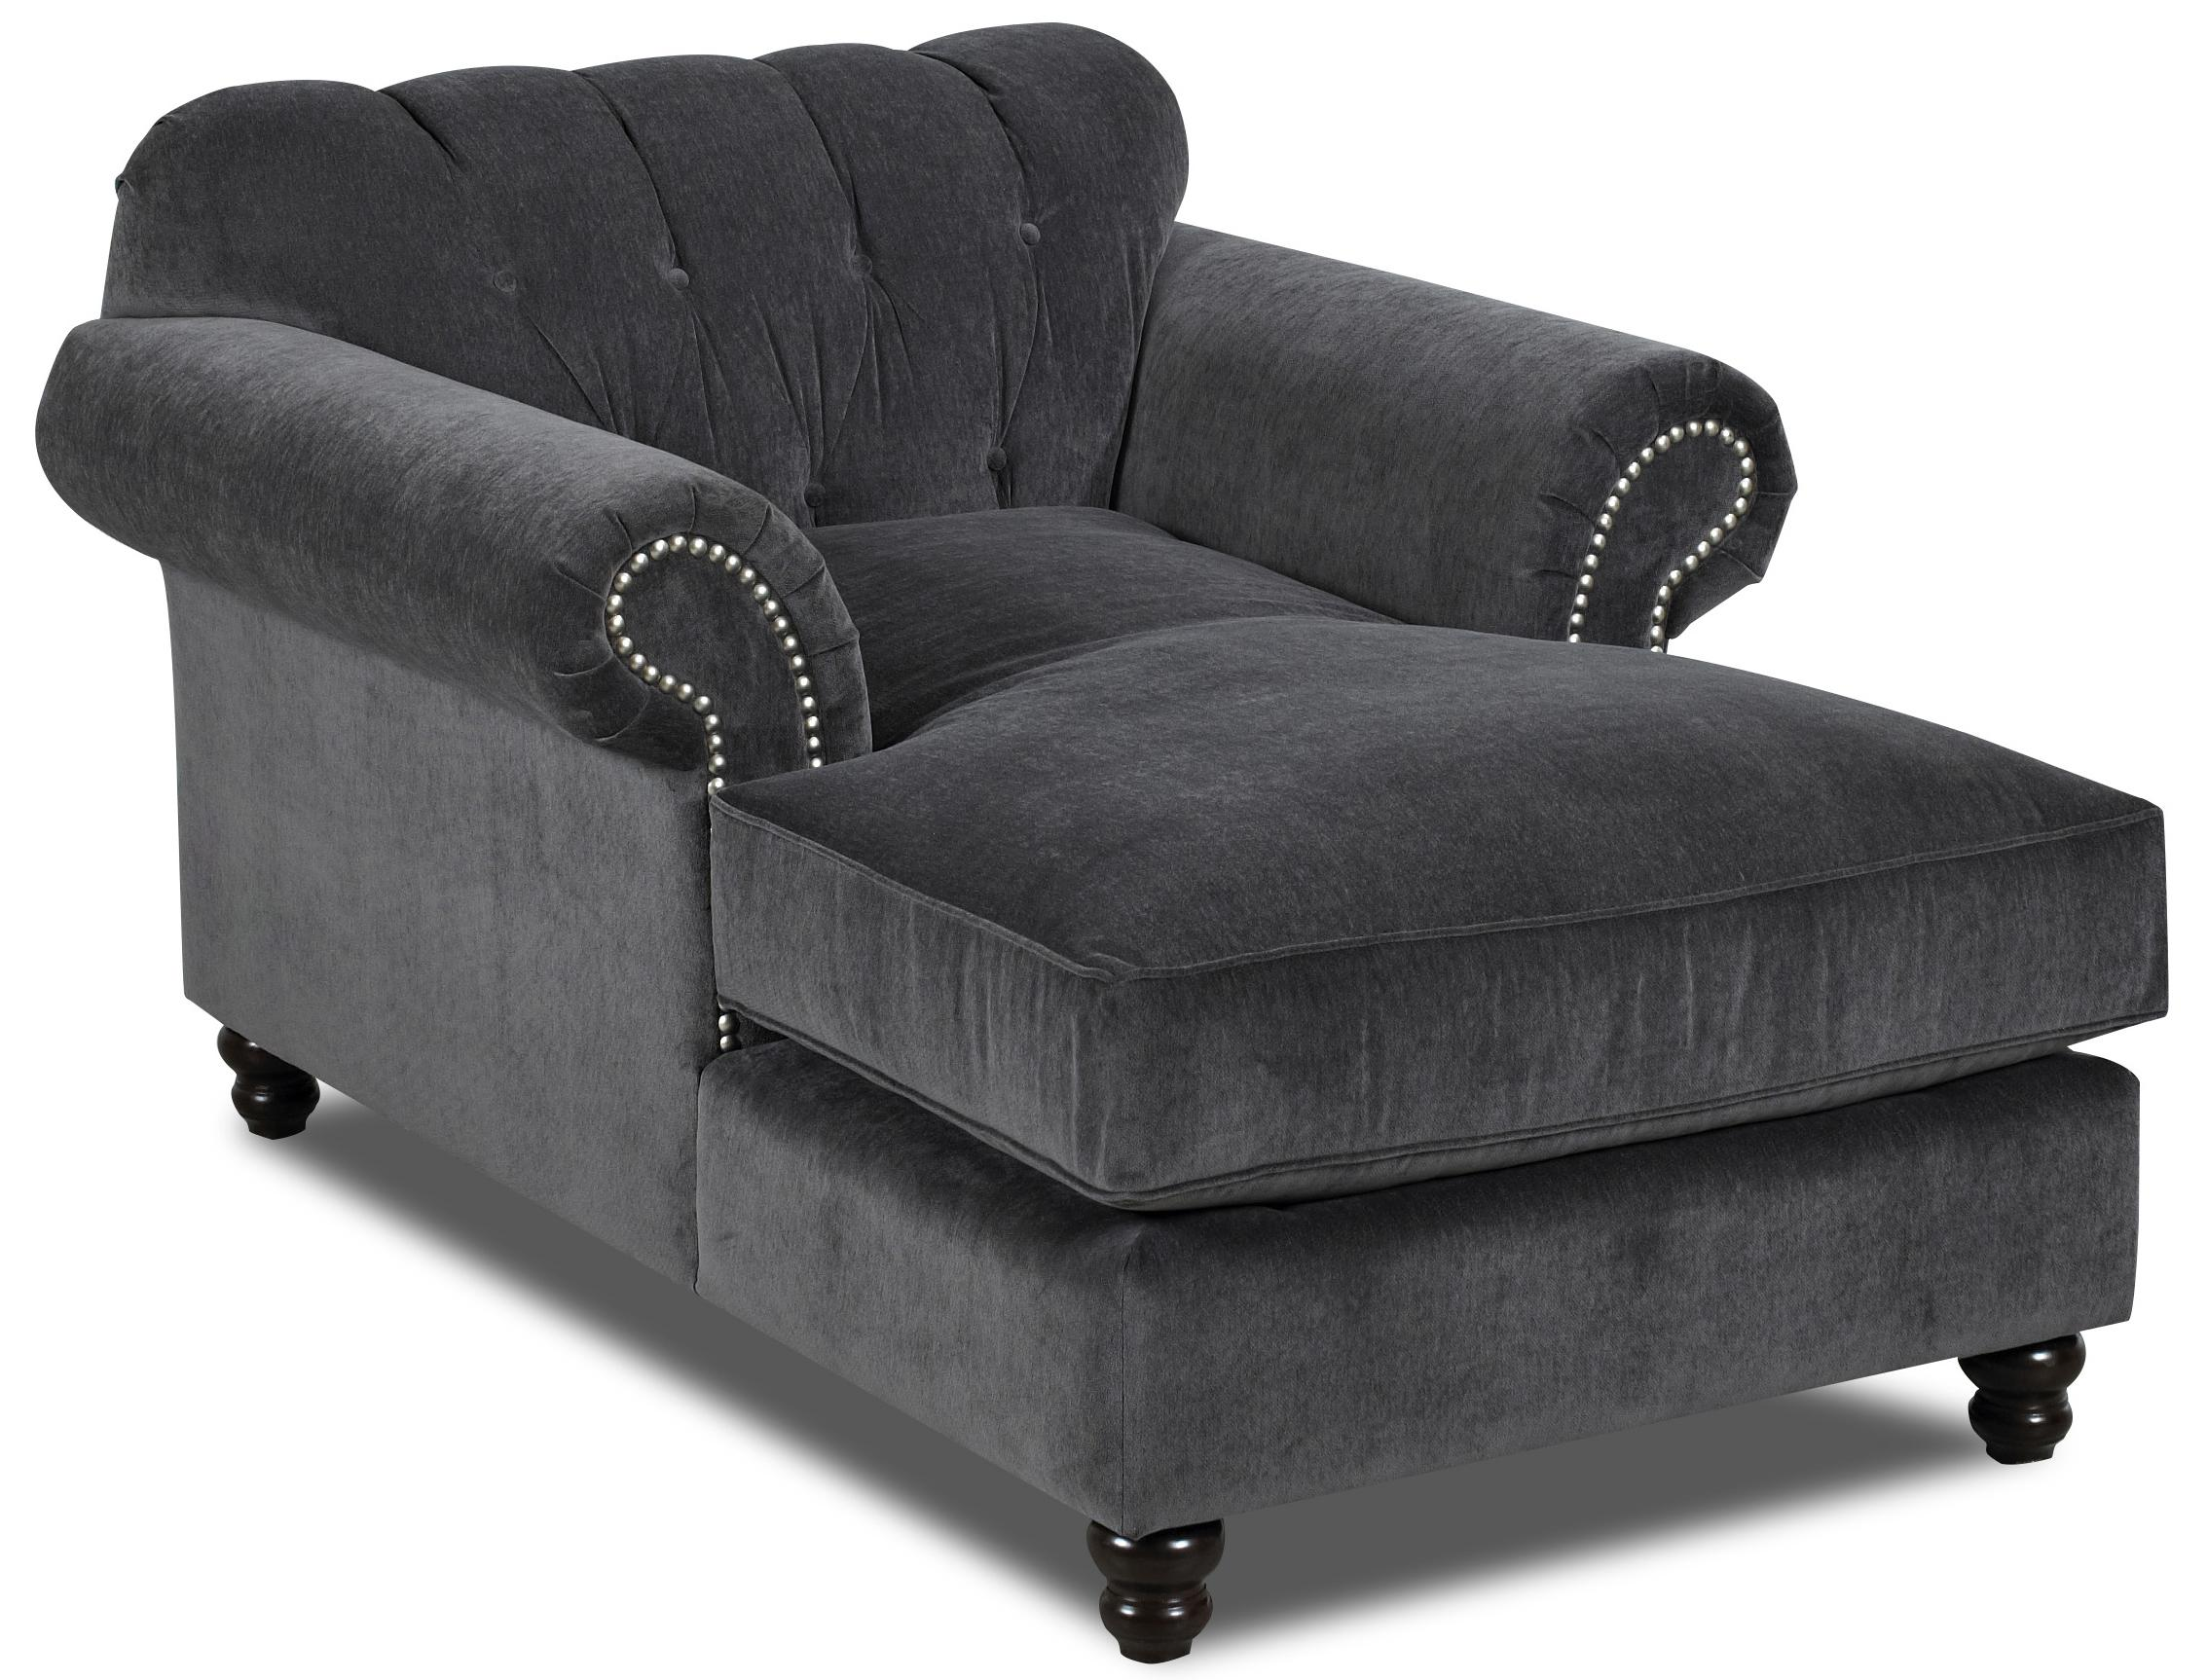 Traditional Chaise with Button Tufted Back and Rolled Arms